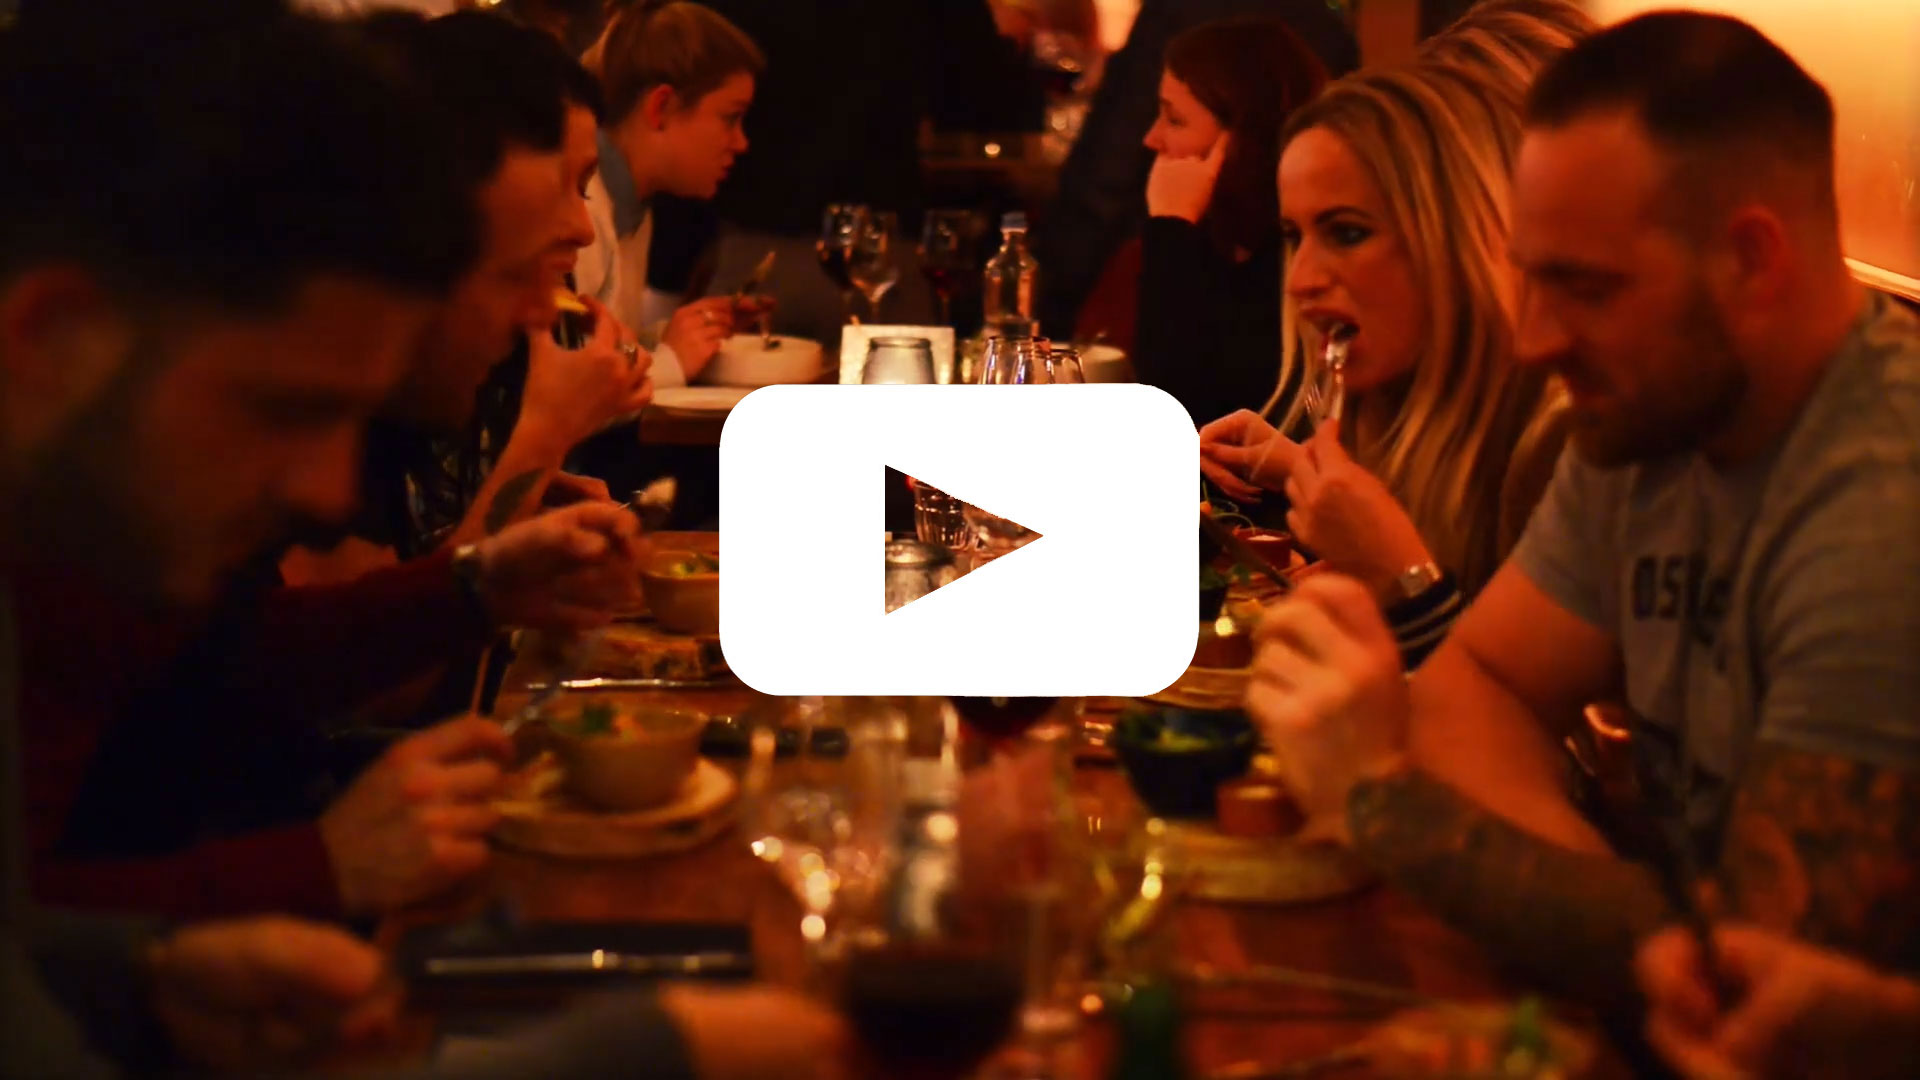 Video - Aftermovie Roots Diningclub 2